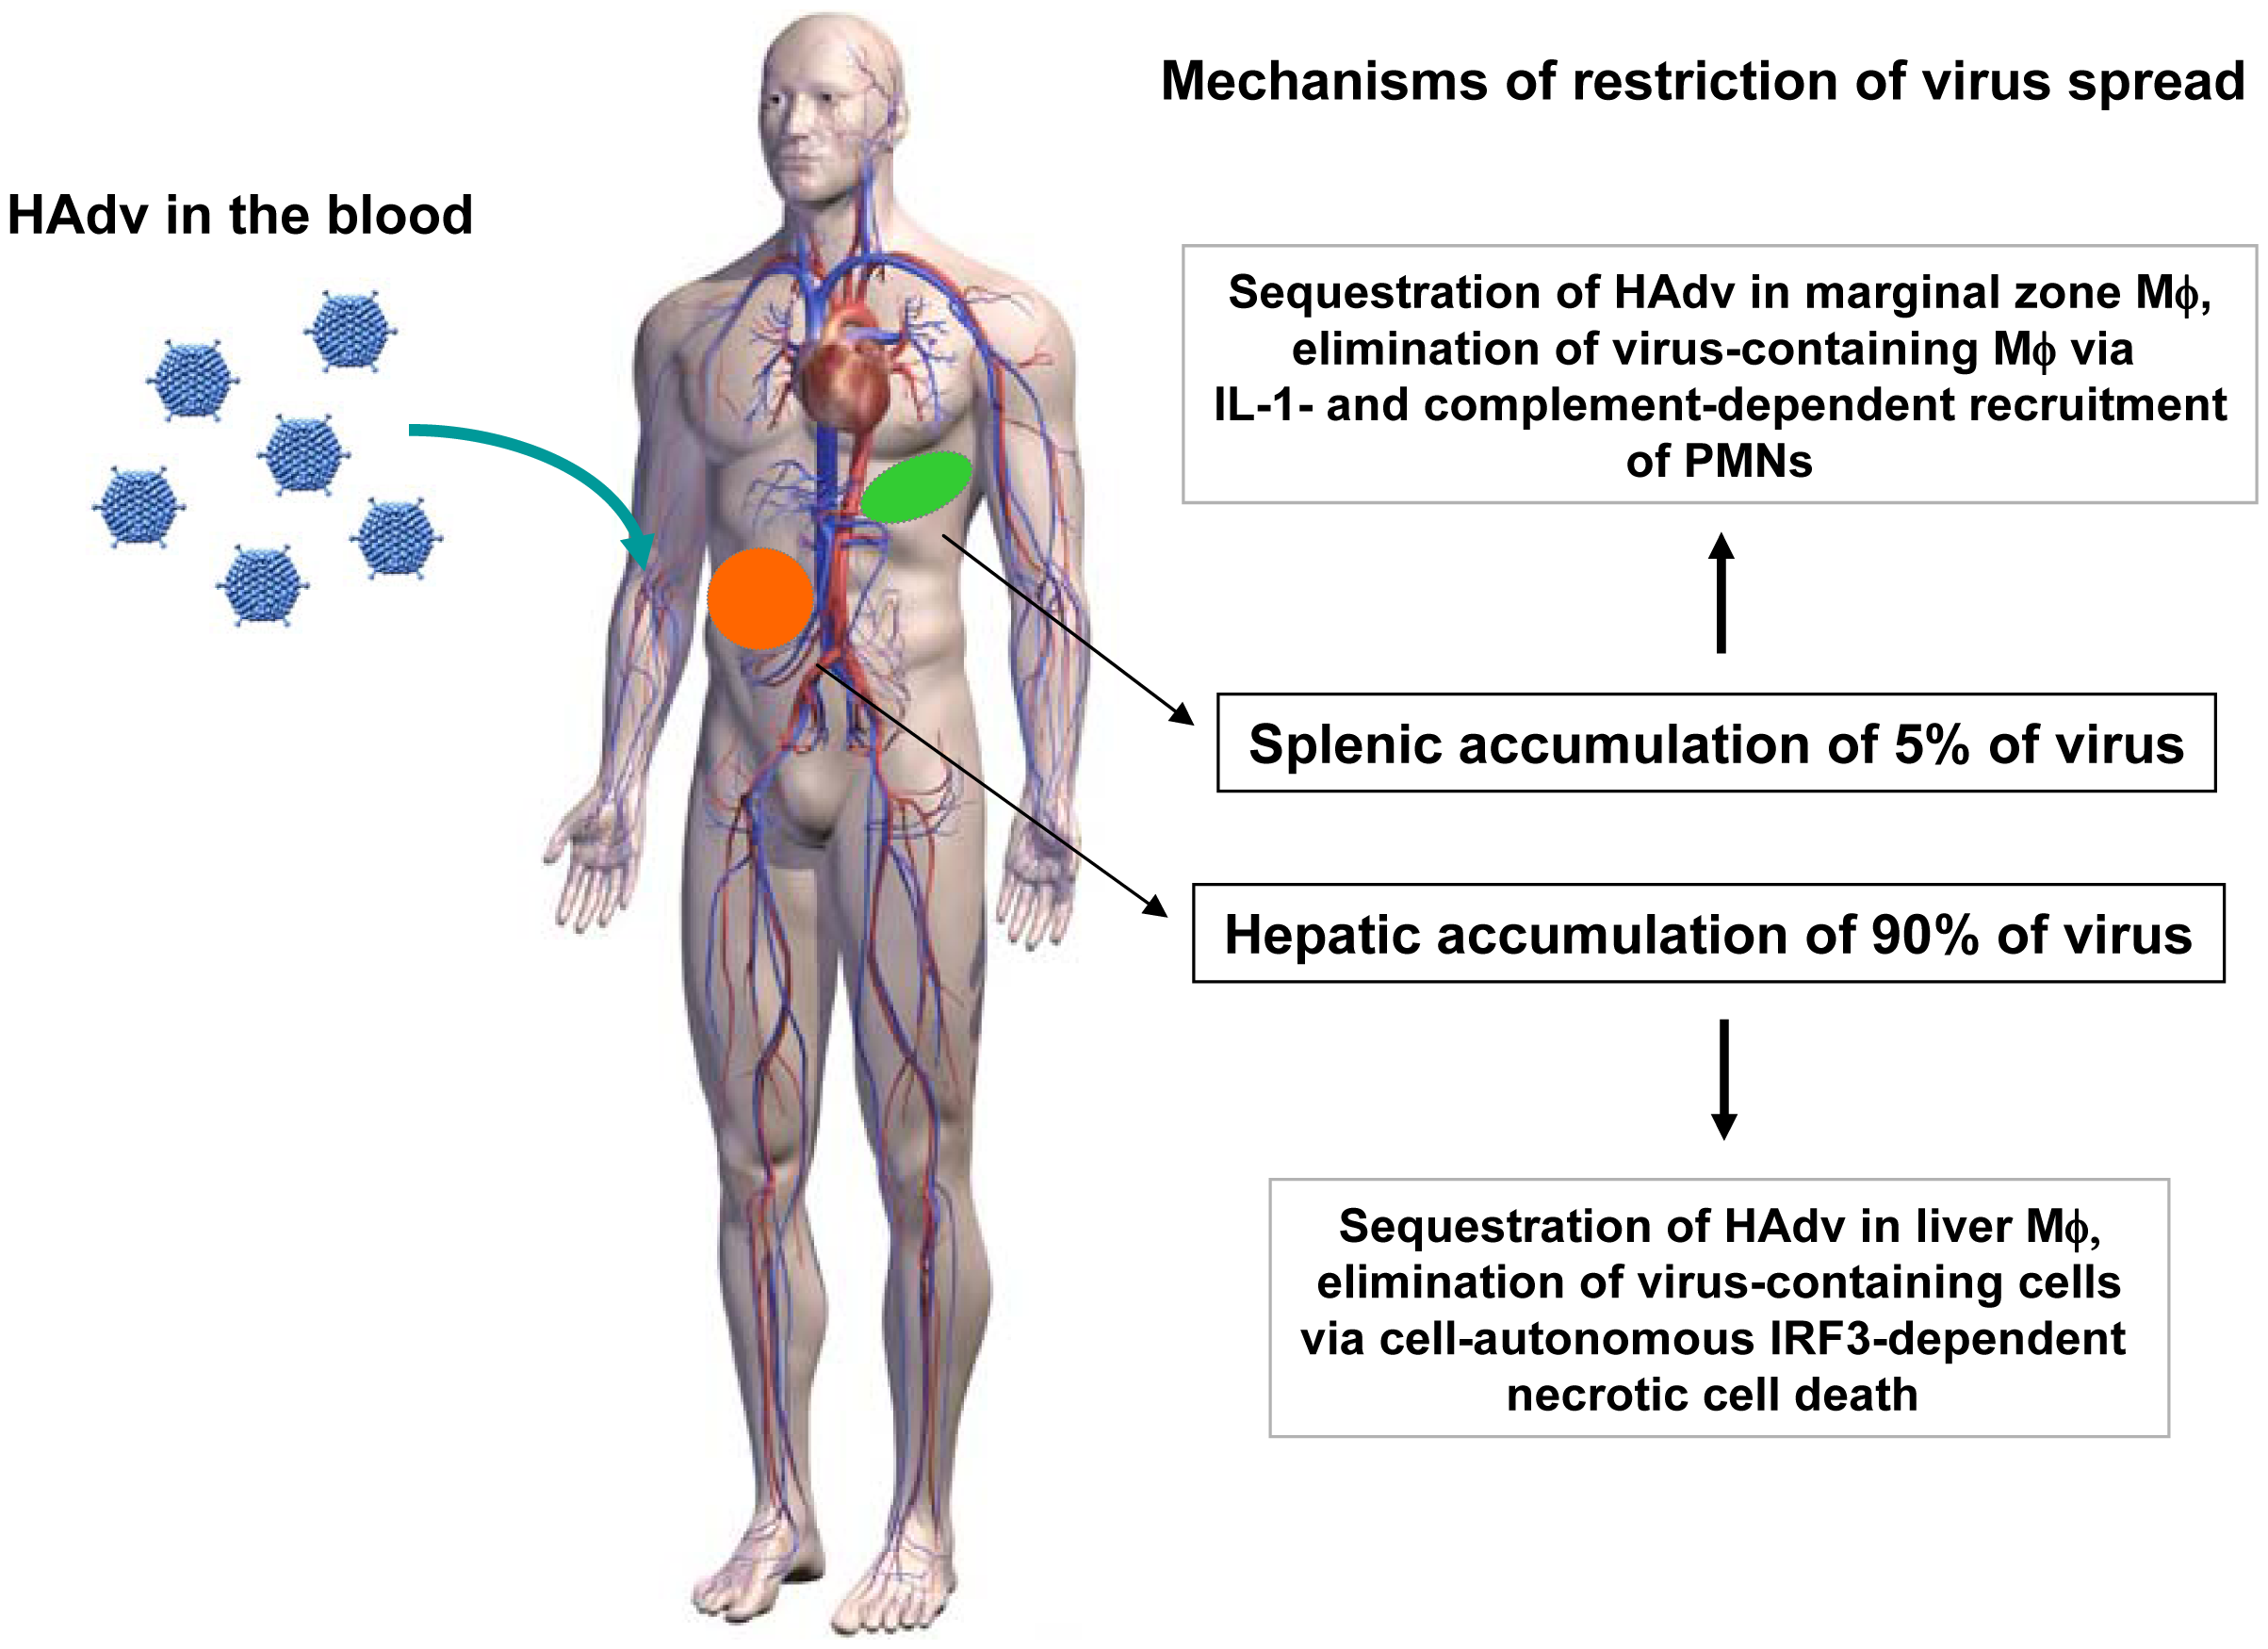 The model of distinct molecular mechanisms engaged by tissue residential macrophages in the liver and spleen to limit systemic spread of adenovirus.